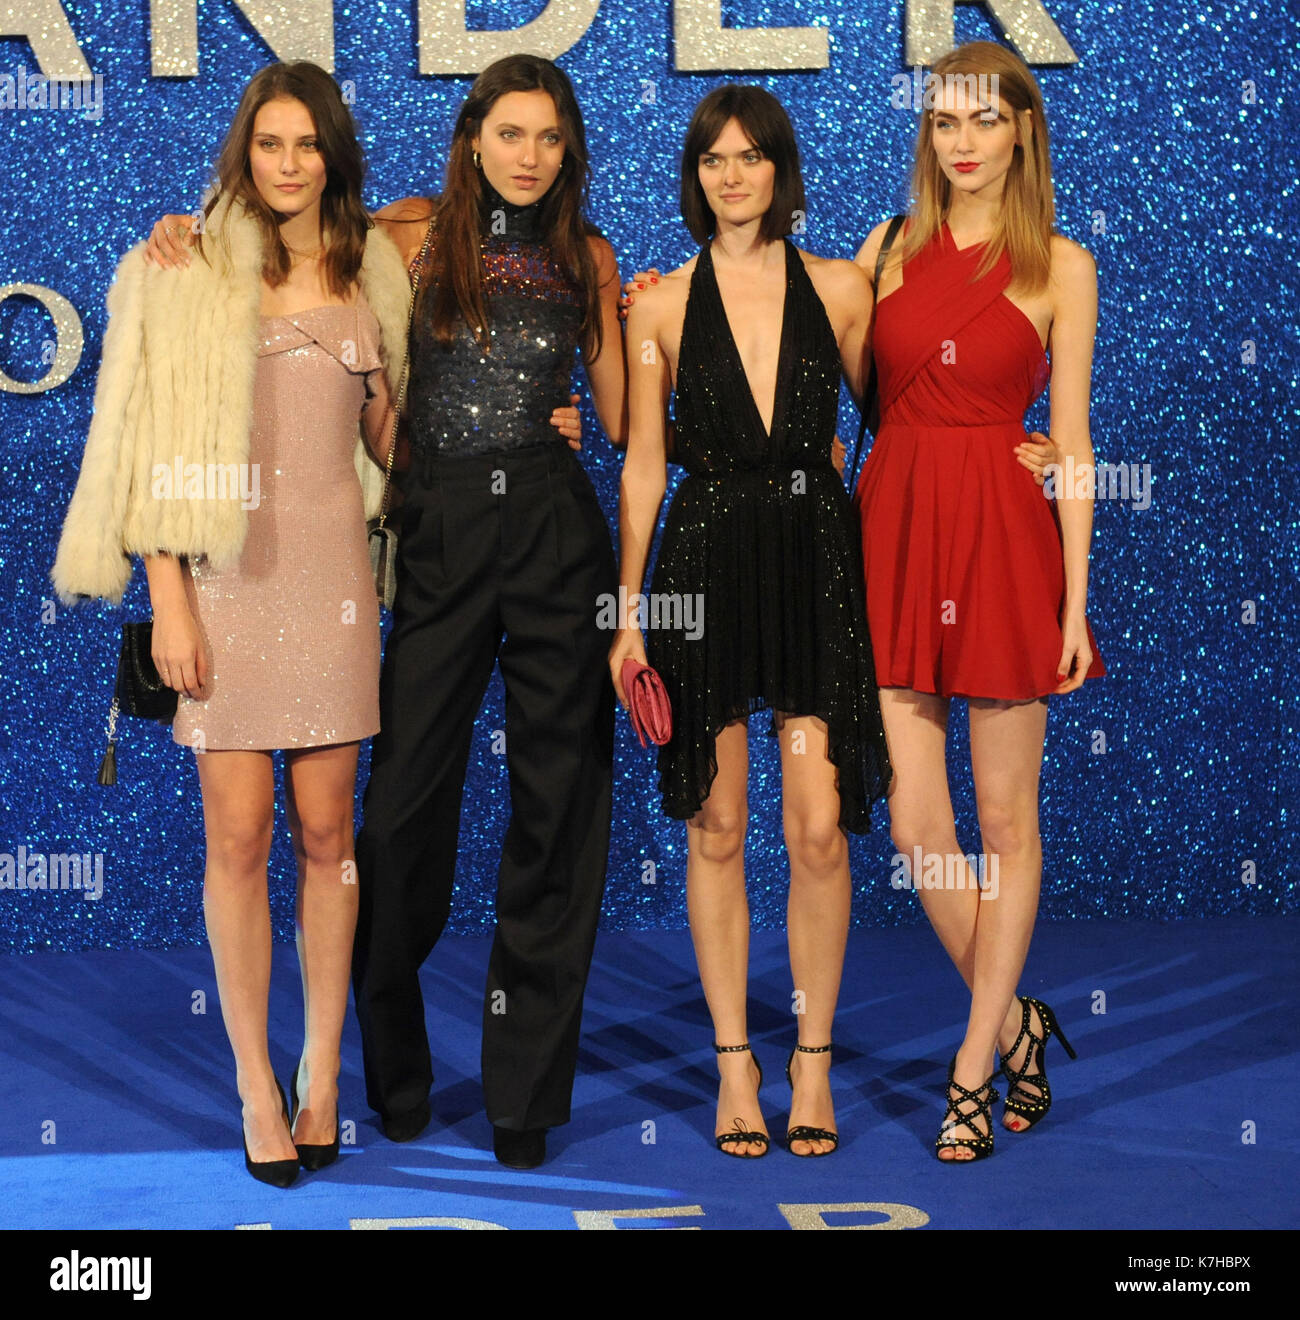 Photo Must Be Credited ©Kate Green/Alpha Press 079965 04/02/2016 Matilda Lowther Samantha Rollinson, Eve Delf and Charlotte Wiggins at the Zoolander 2 Movie Premiere at Empire Leicester Square, London. - Stock Image